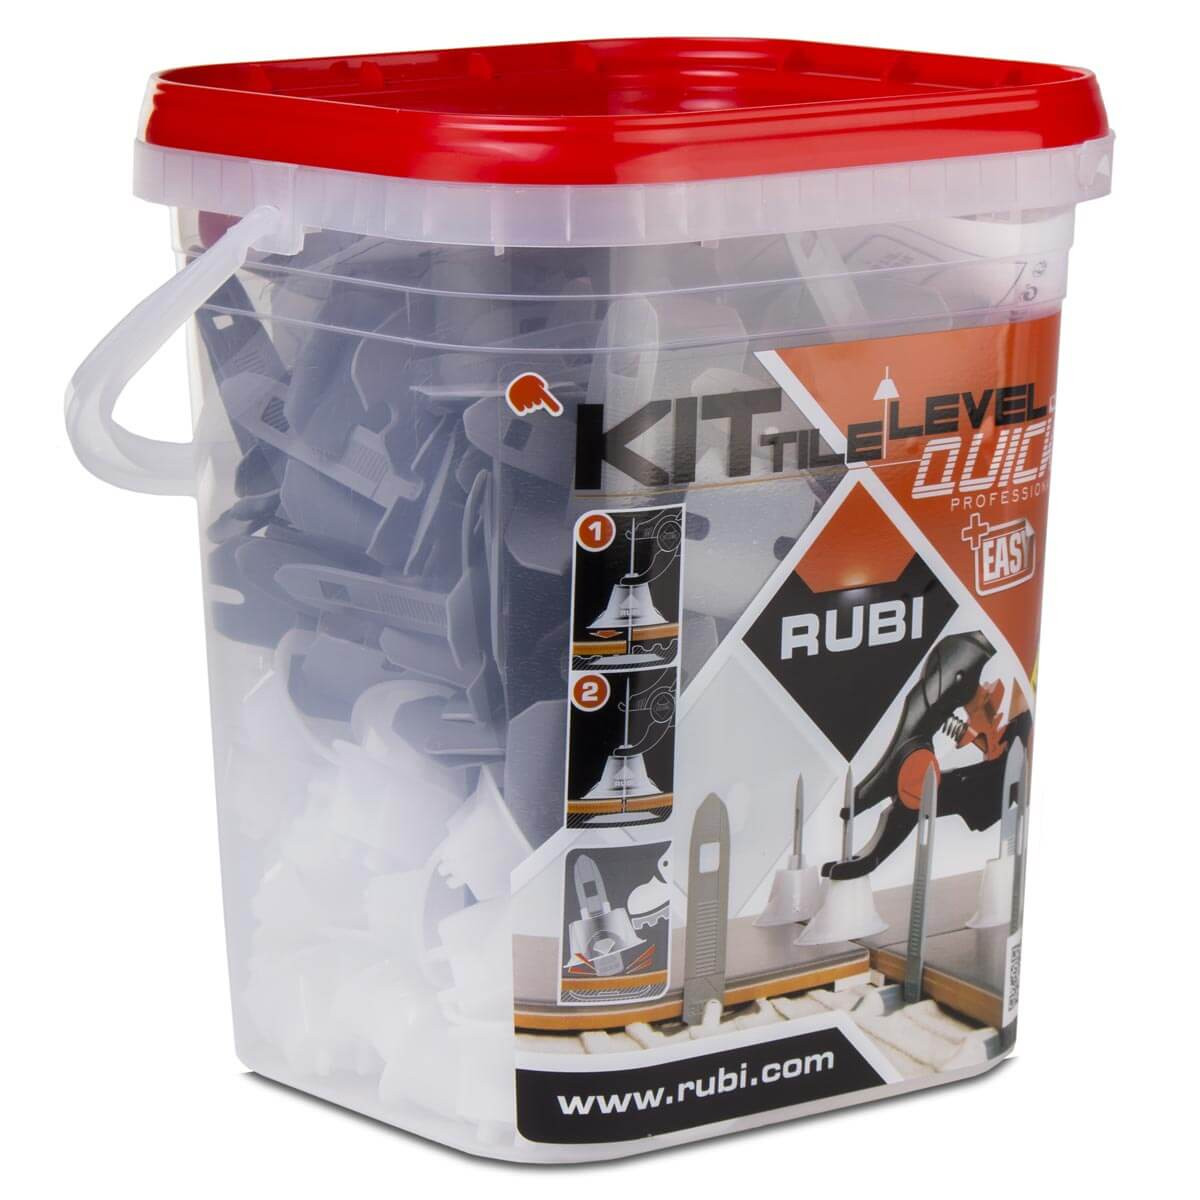 Rubi Tools Tile Level Quick case